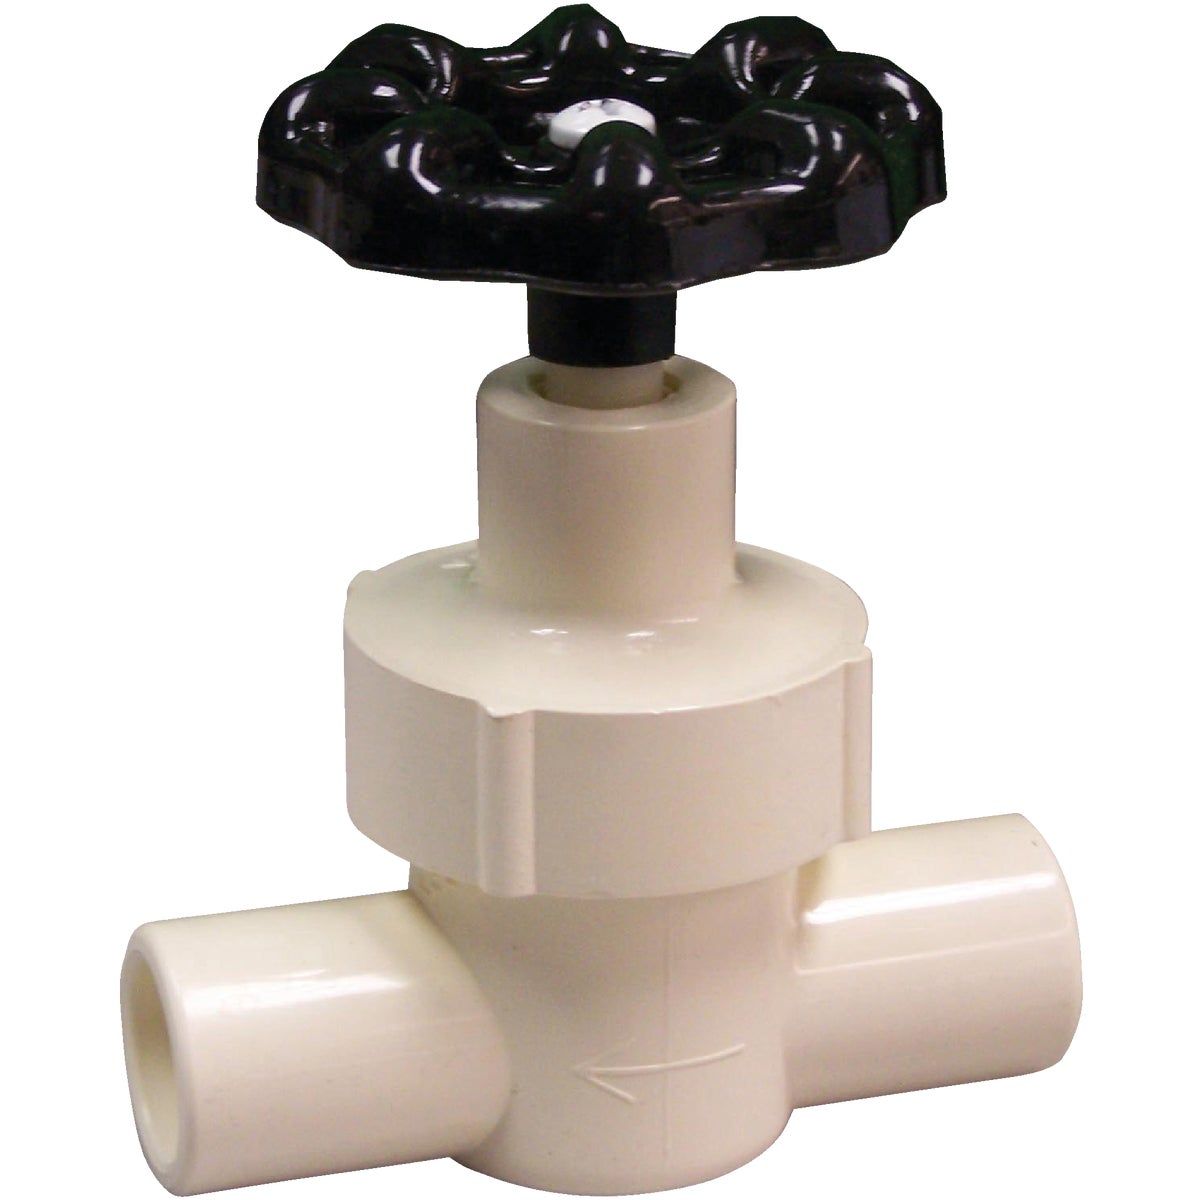 3/4OR1/2 CPVC LINE VALVE - 53015 by Genova Inc